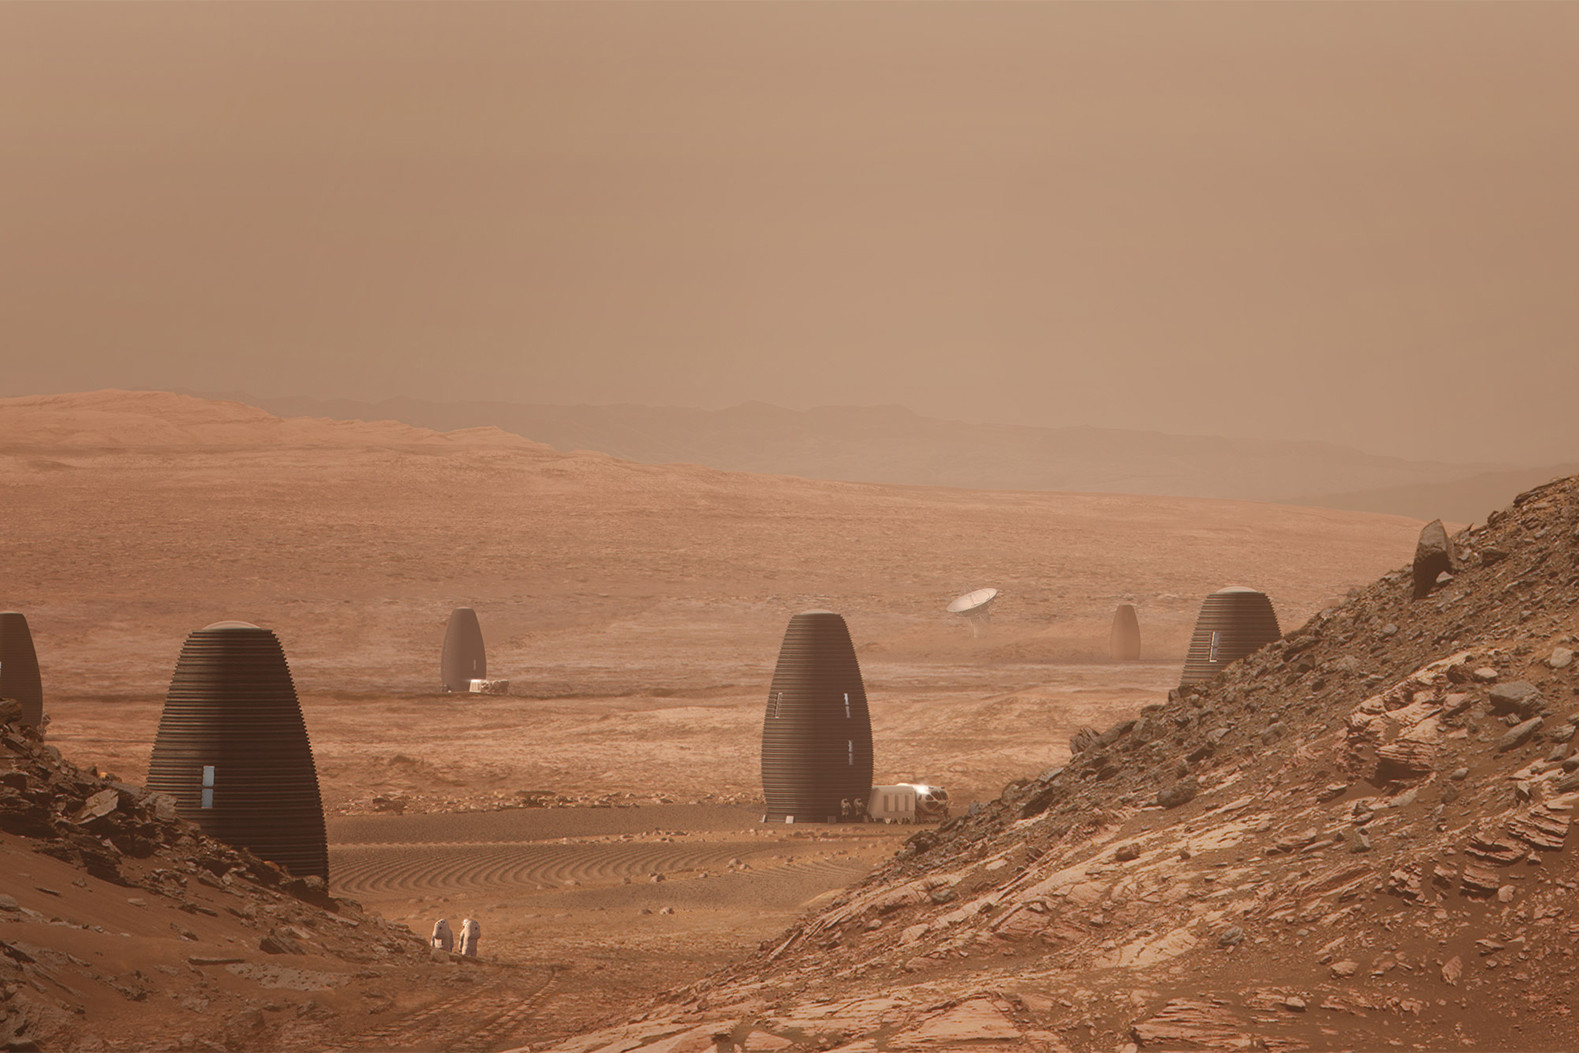 nasa-3d-printed-mars-habitat-competition-winners-3